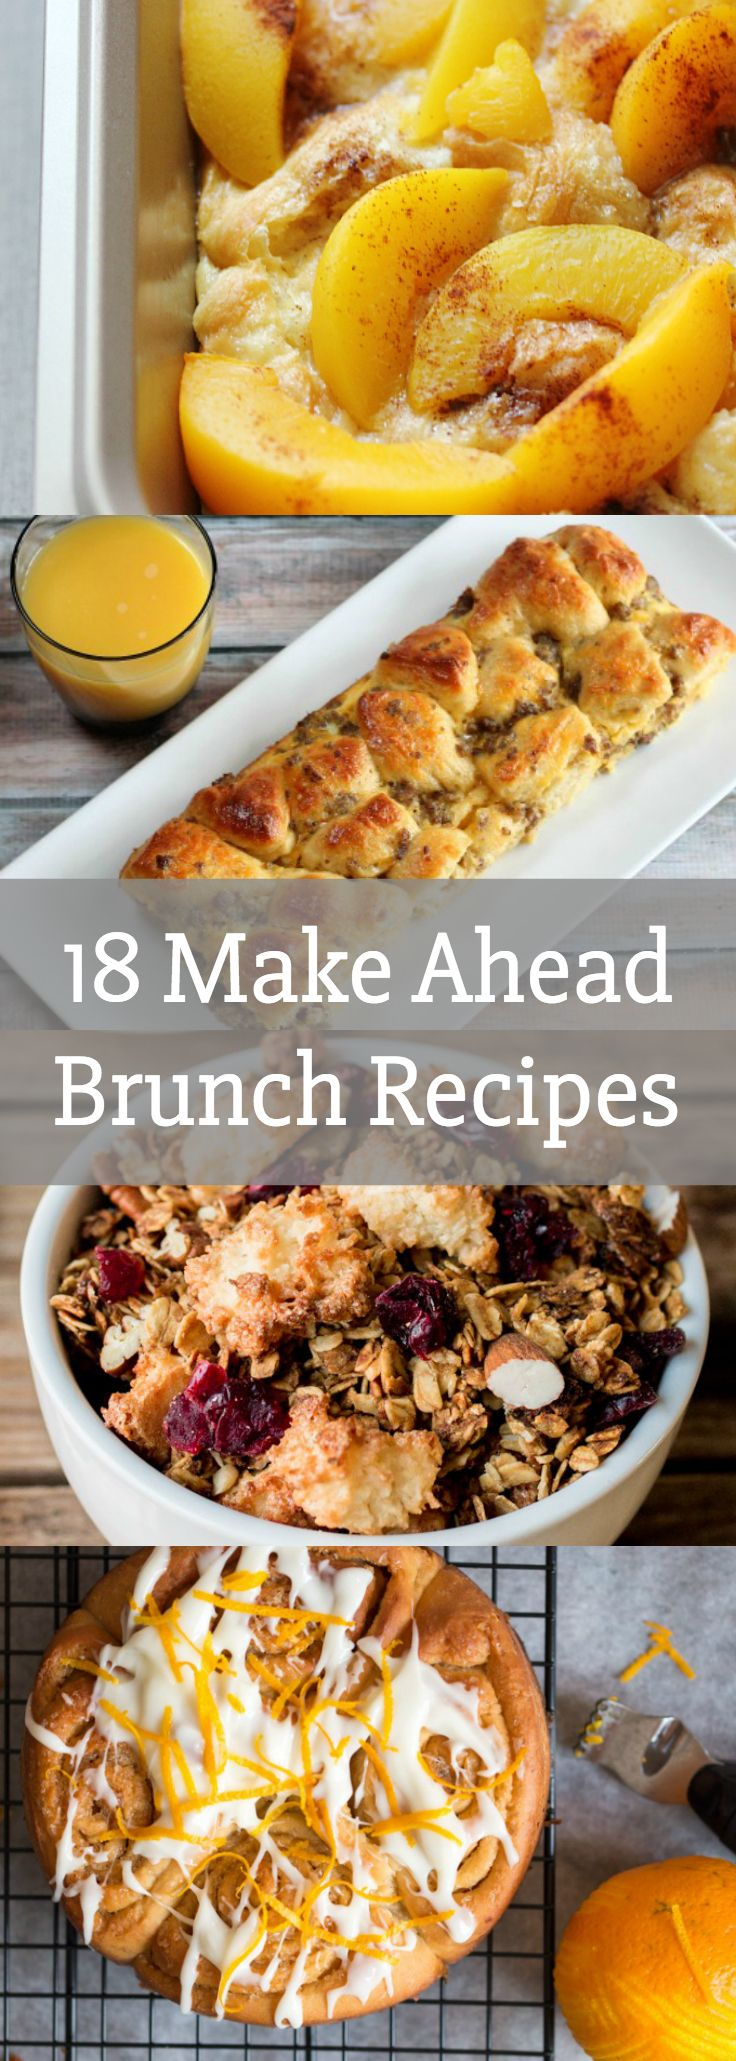 18 Make Ahead Brunch Recipes- Breakfast, brunch ideas, party ideas, Easter, recipes, casseroles, oatmeal, cinnamon rolls, sweets, food, bread, fruit, eggs, bacon, quiche via @LovePastaBlog